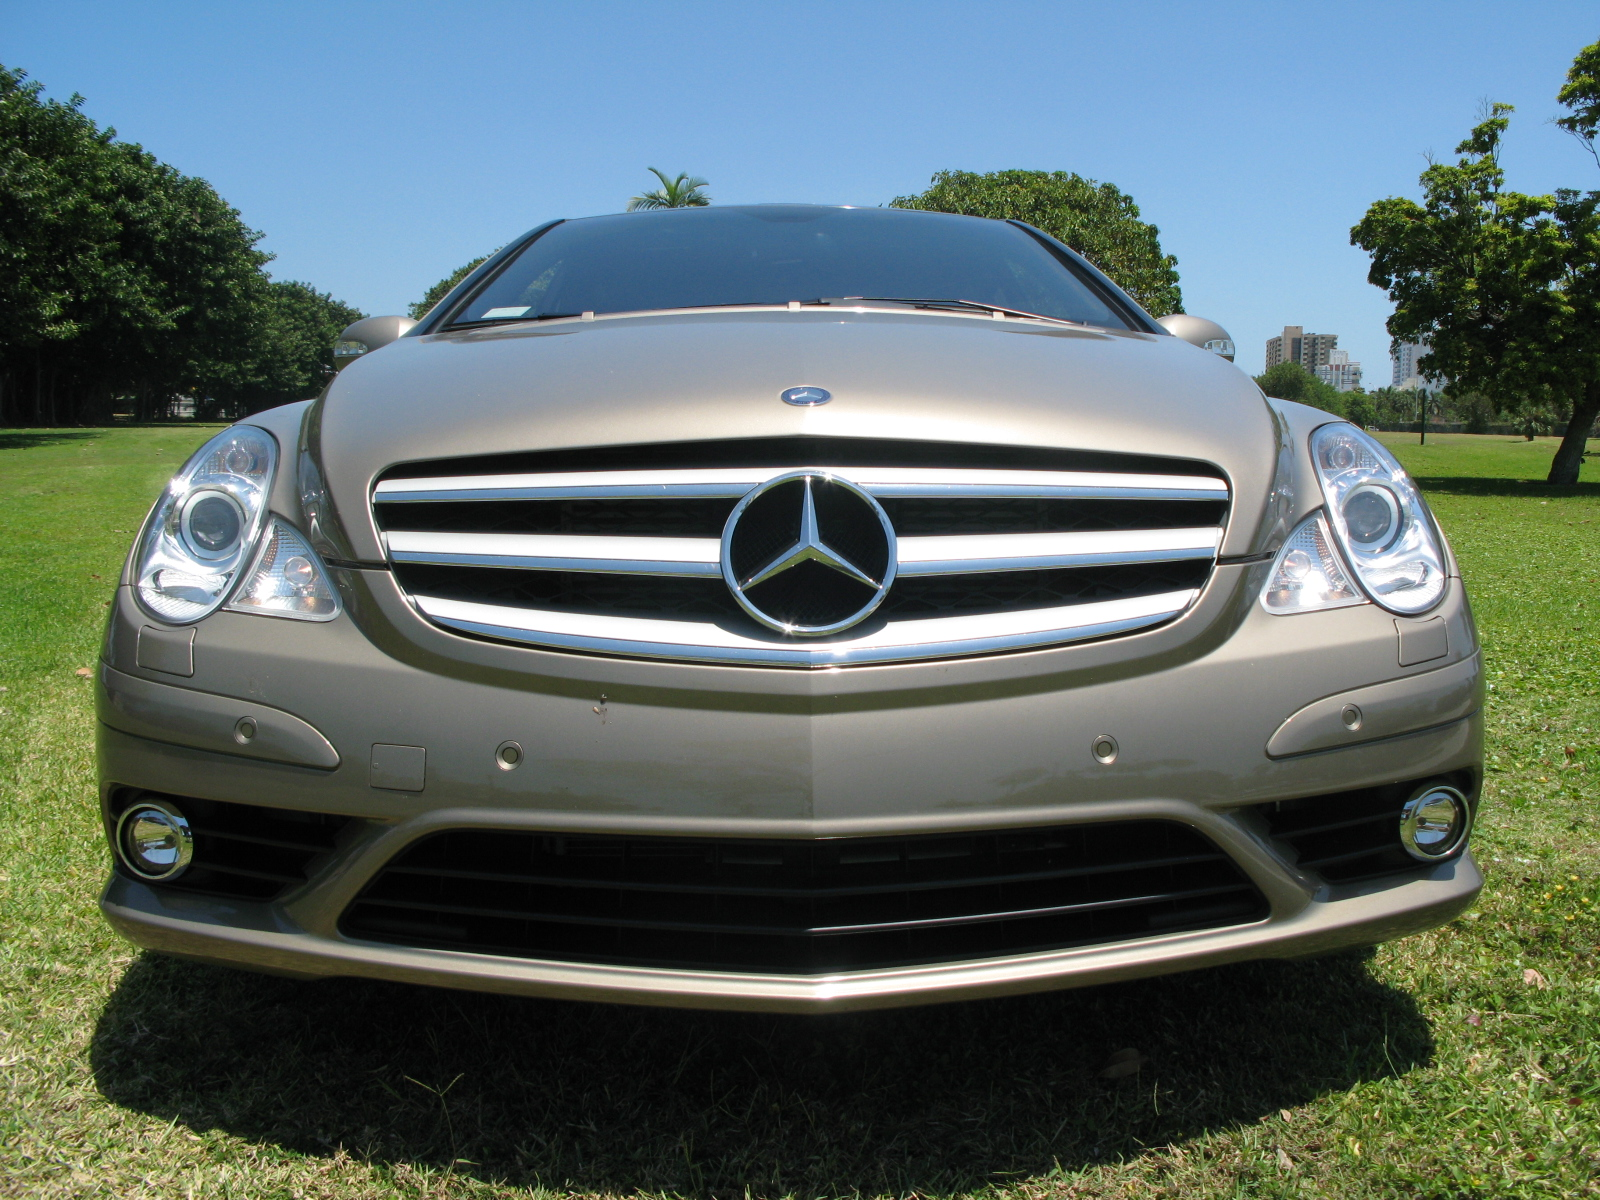 2008 Mercedes R320 CDI 4-Matic | Top Speed